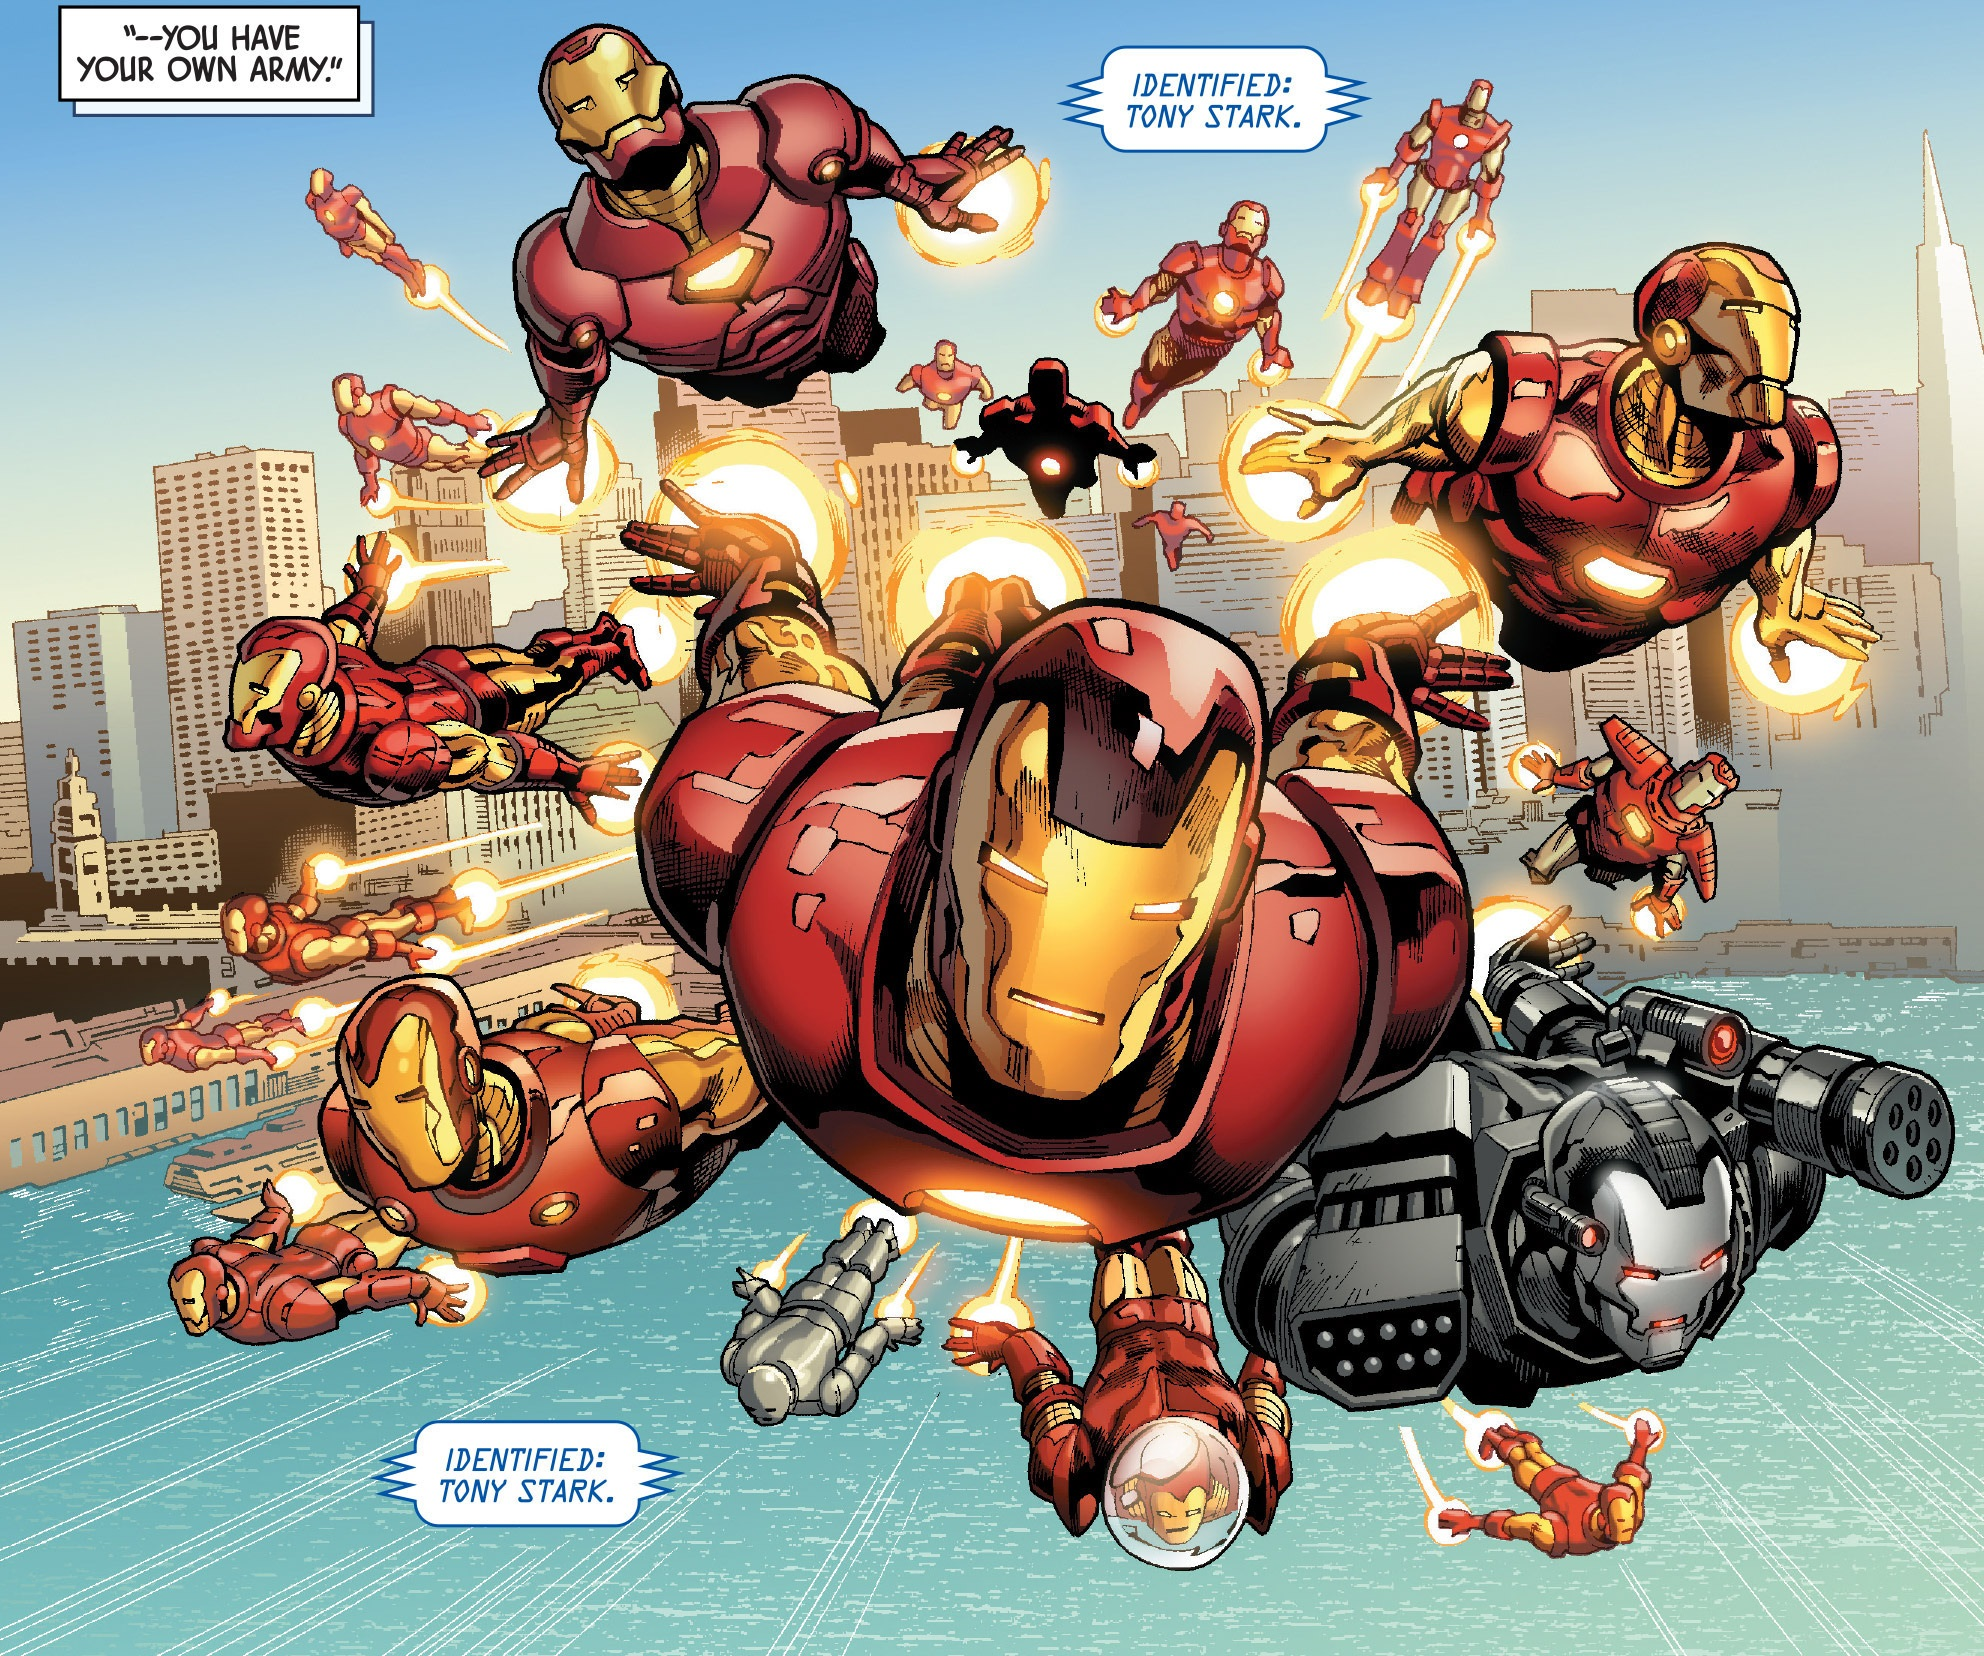 Superior Iron Man Backgrounds on Wallpapers Vista